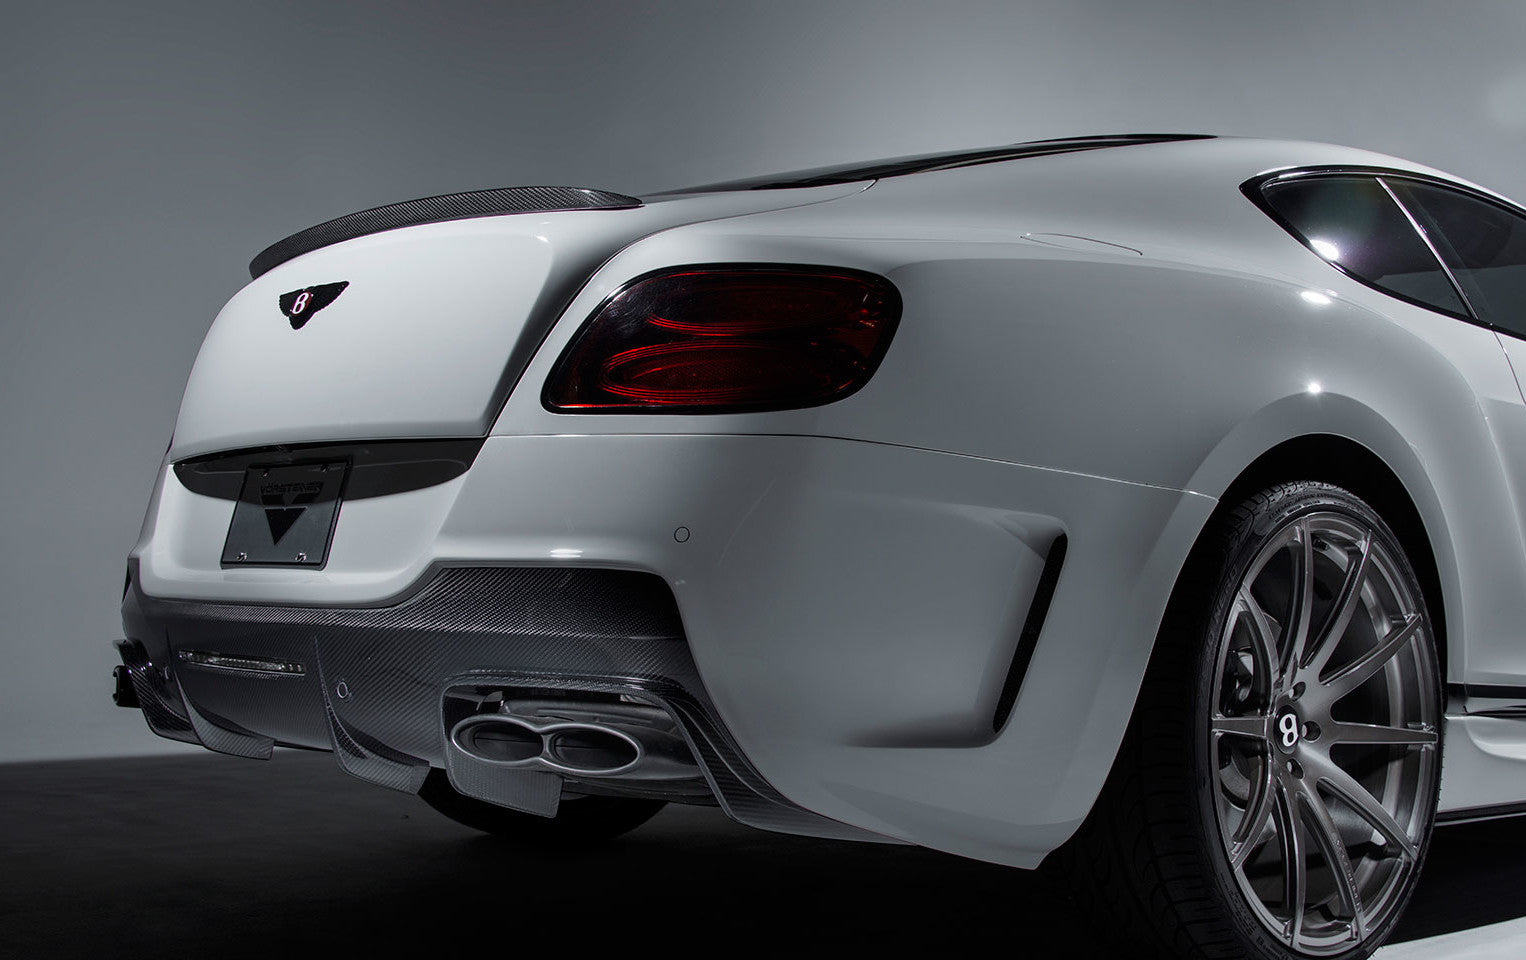 BENTLEY CONTINENTAL GT V8 FACELIFT BR AERO VORSTEINER REAR BUMPER